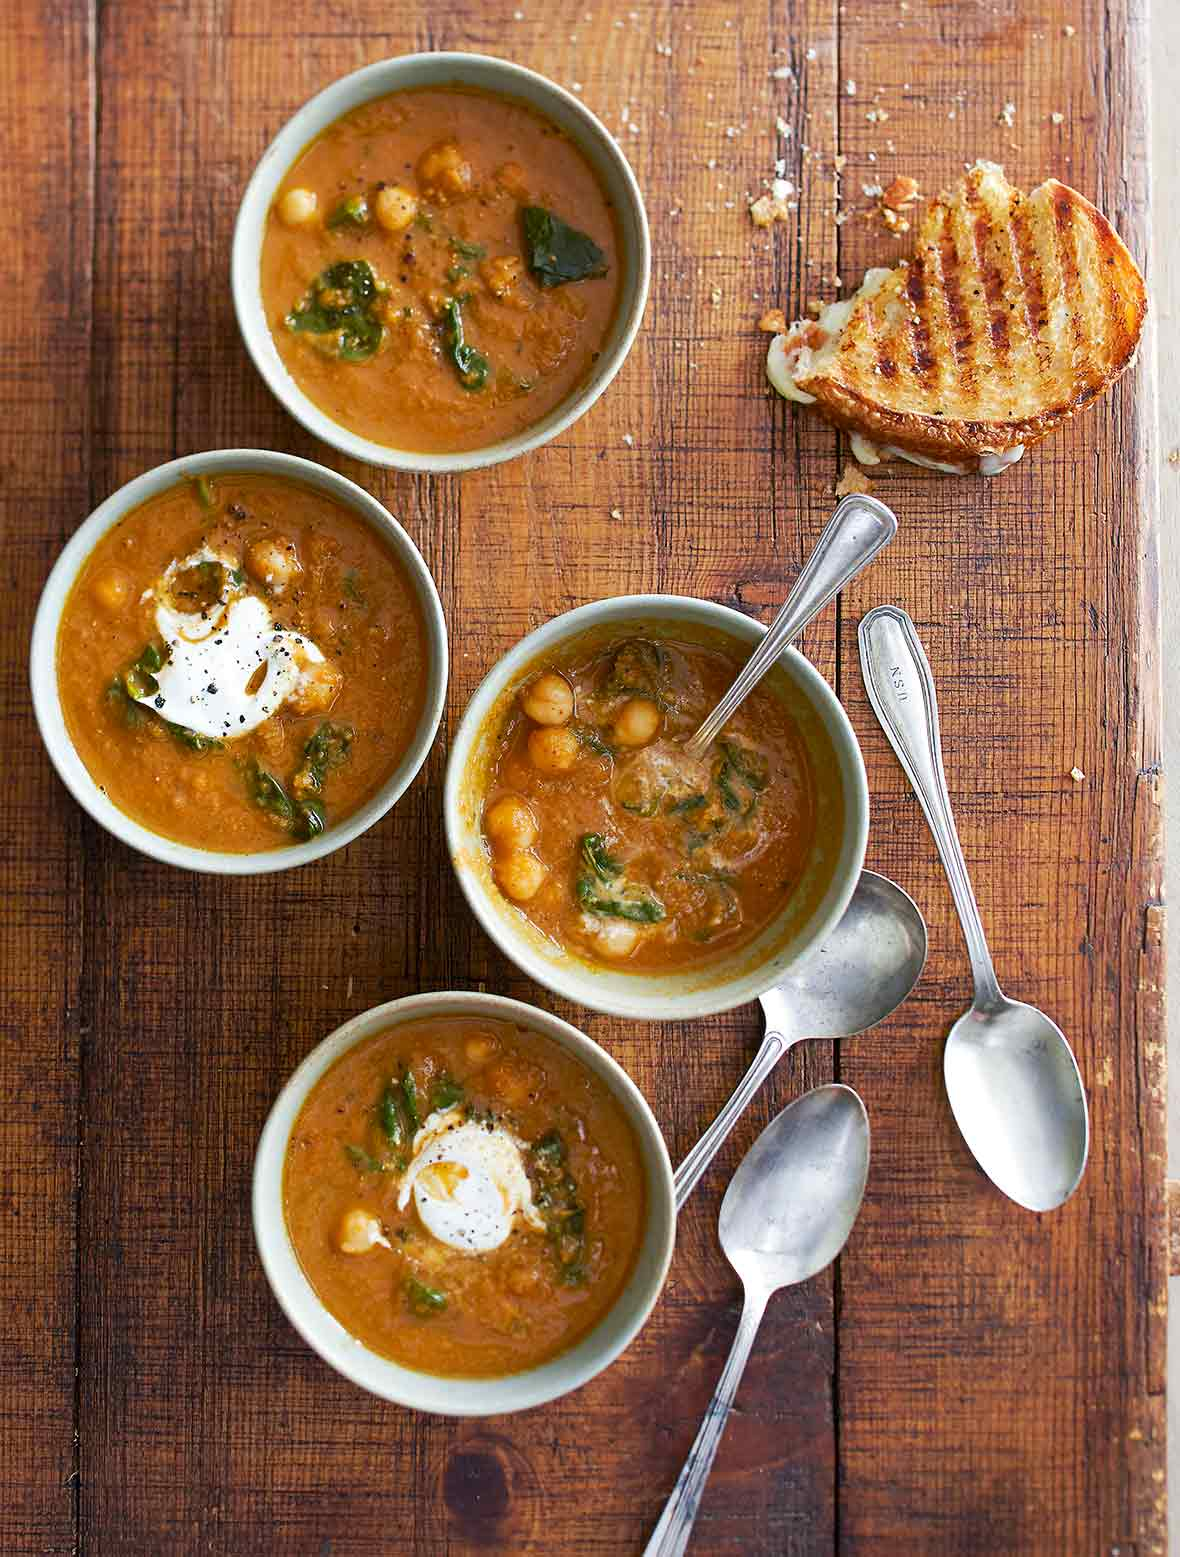 Four bowls of tomato soup with chickpeas and spinach, two with dollops of sour cream, and a half eaten grilled cheese on the side.